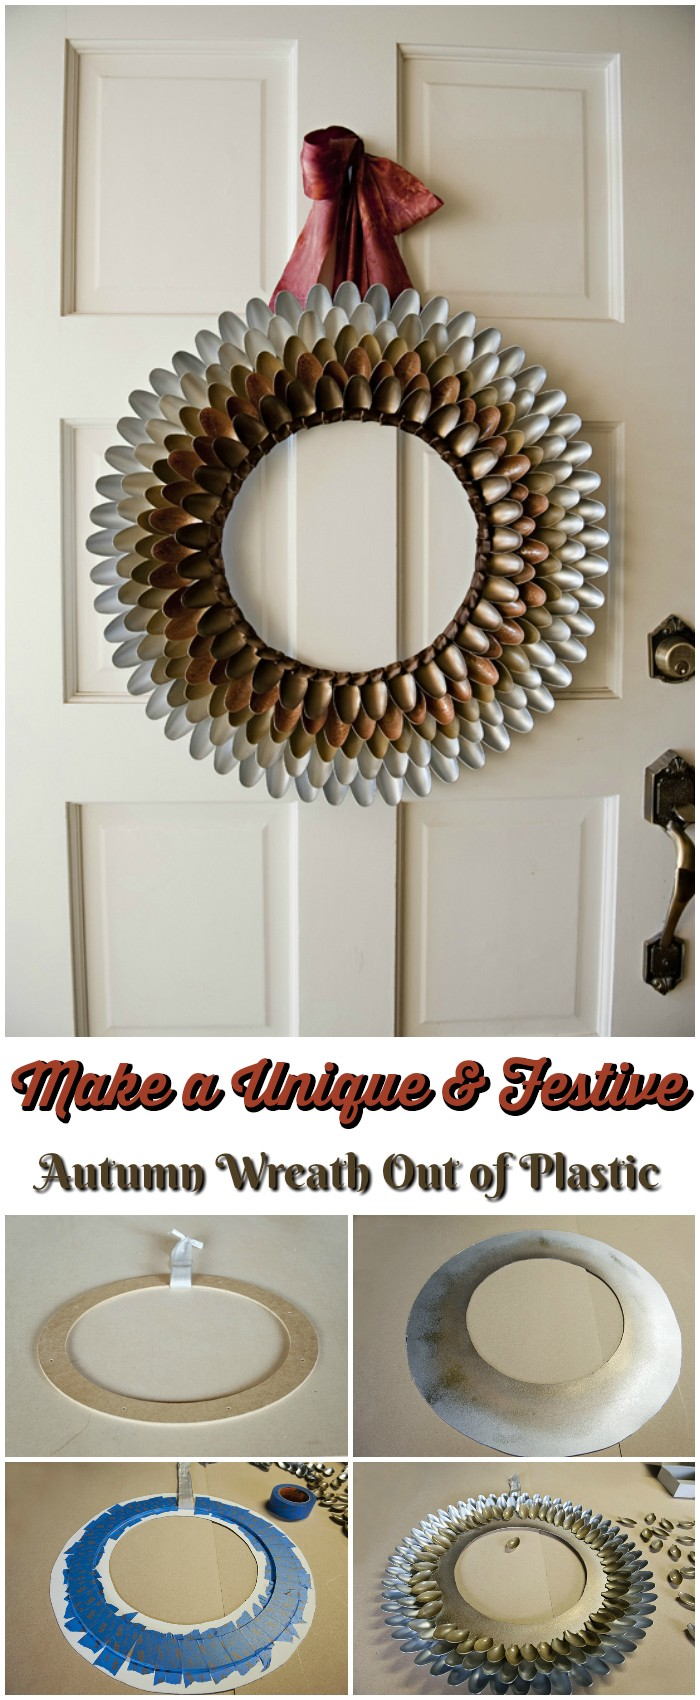 Make a Unique & Festive Autumn Wreath Out of Plastic